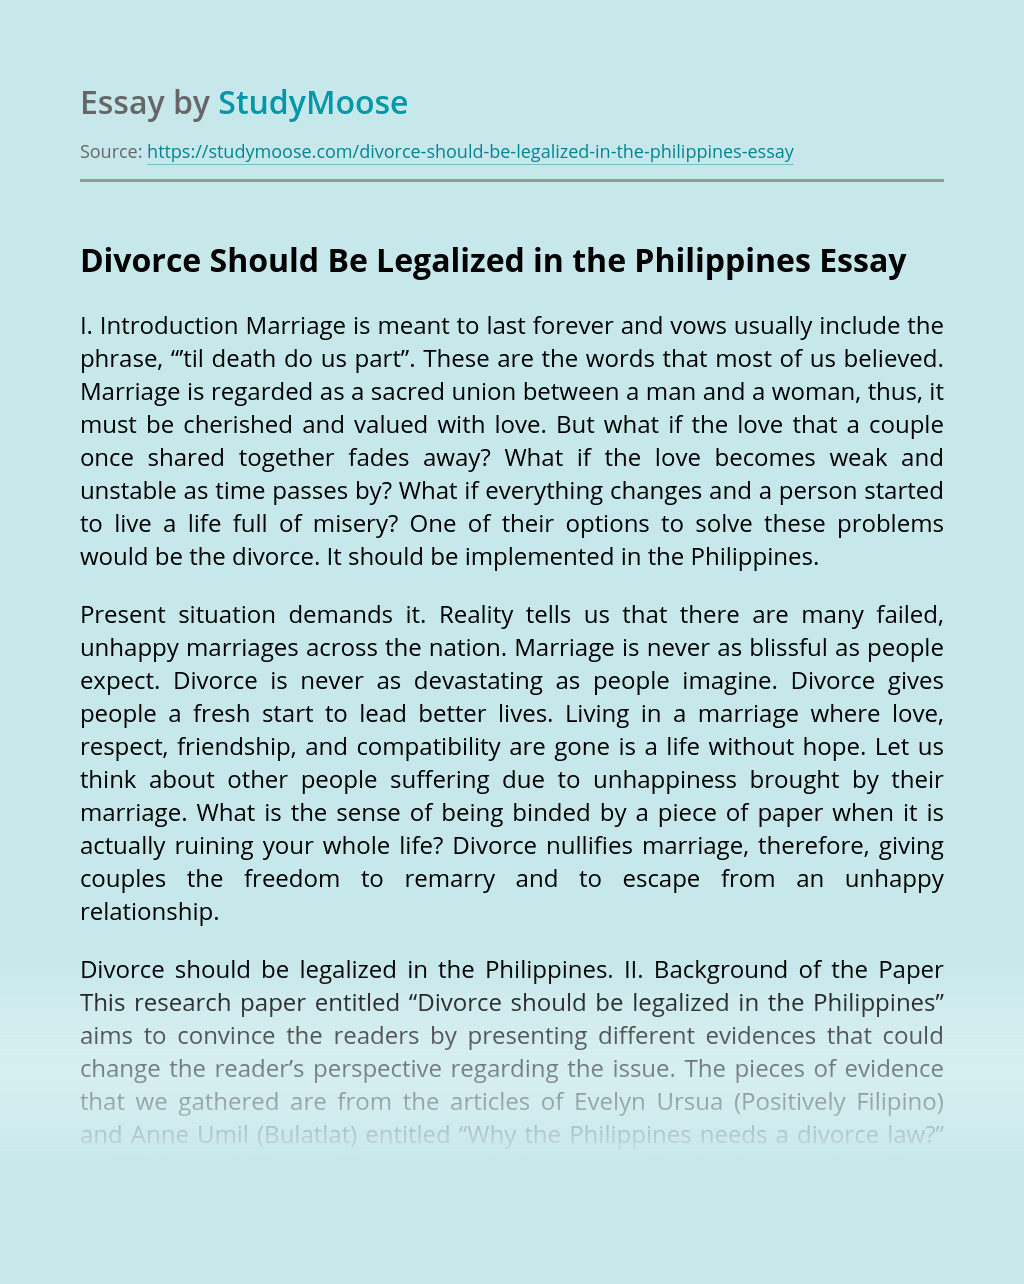 Divorce Should Be Legalized in the Philippines